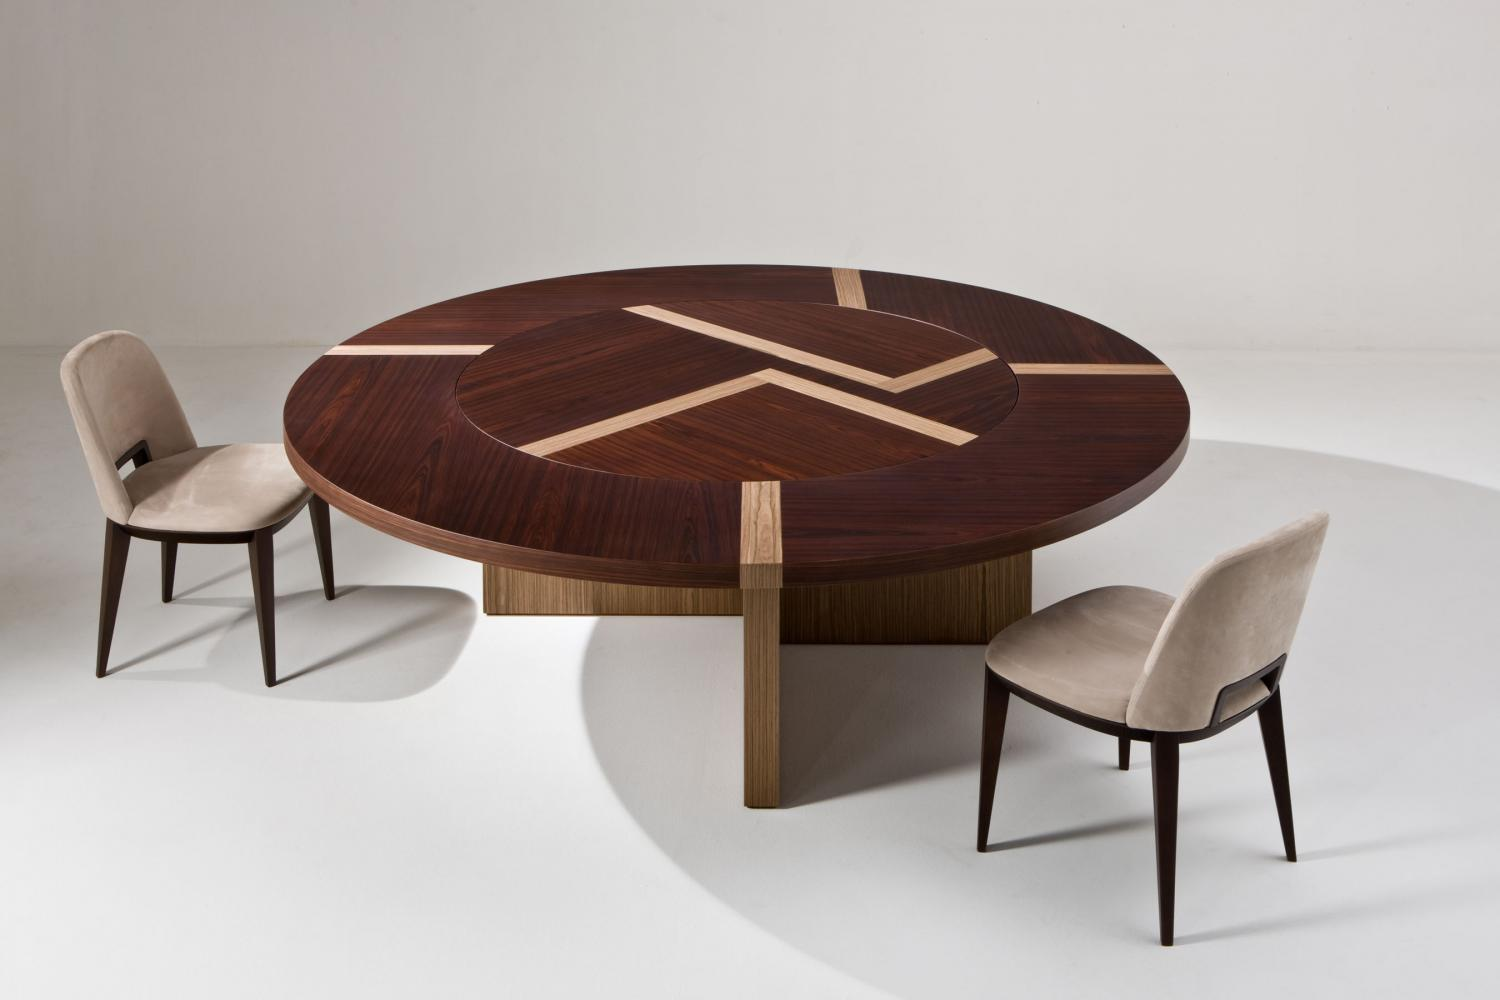 BD 07 Combining Elegance With Solidity Is A Square Table Ideal For Any Sharing Moment